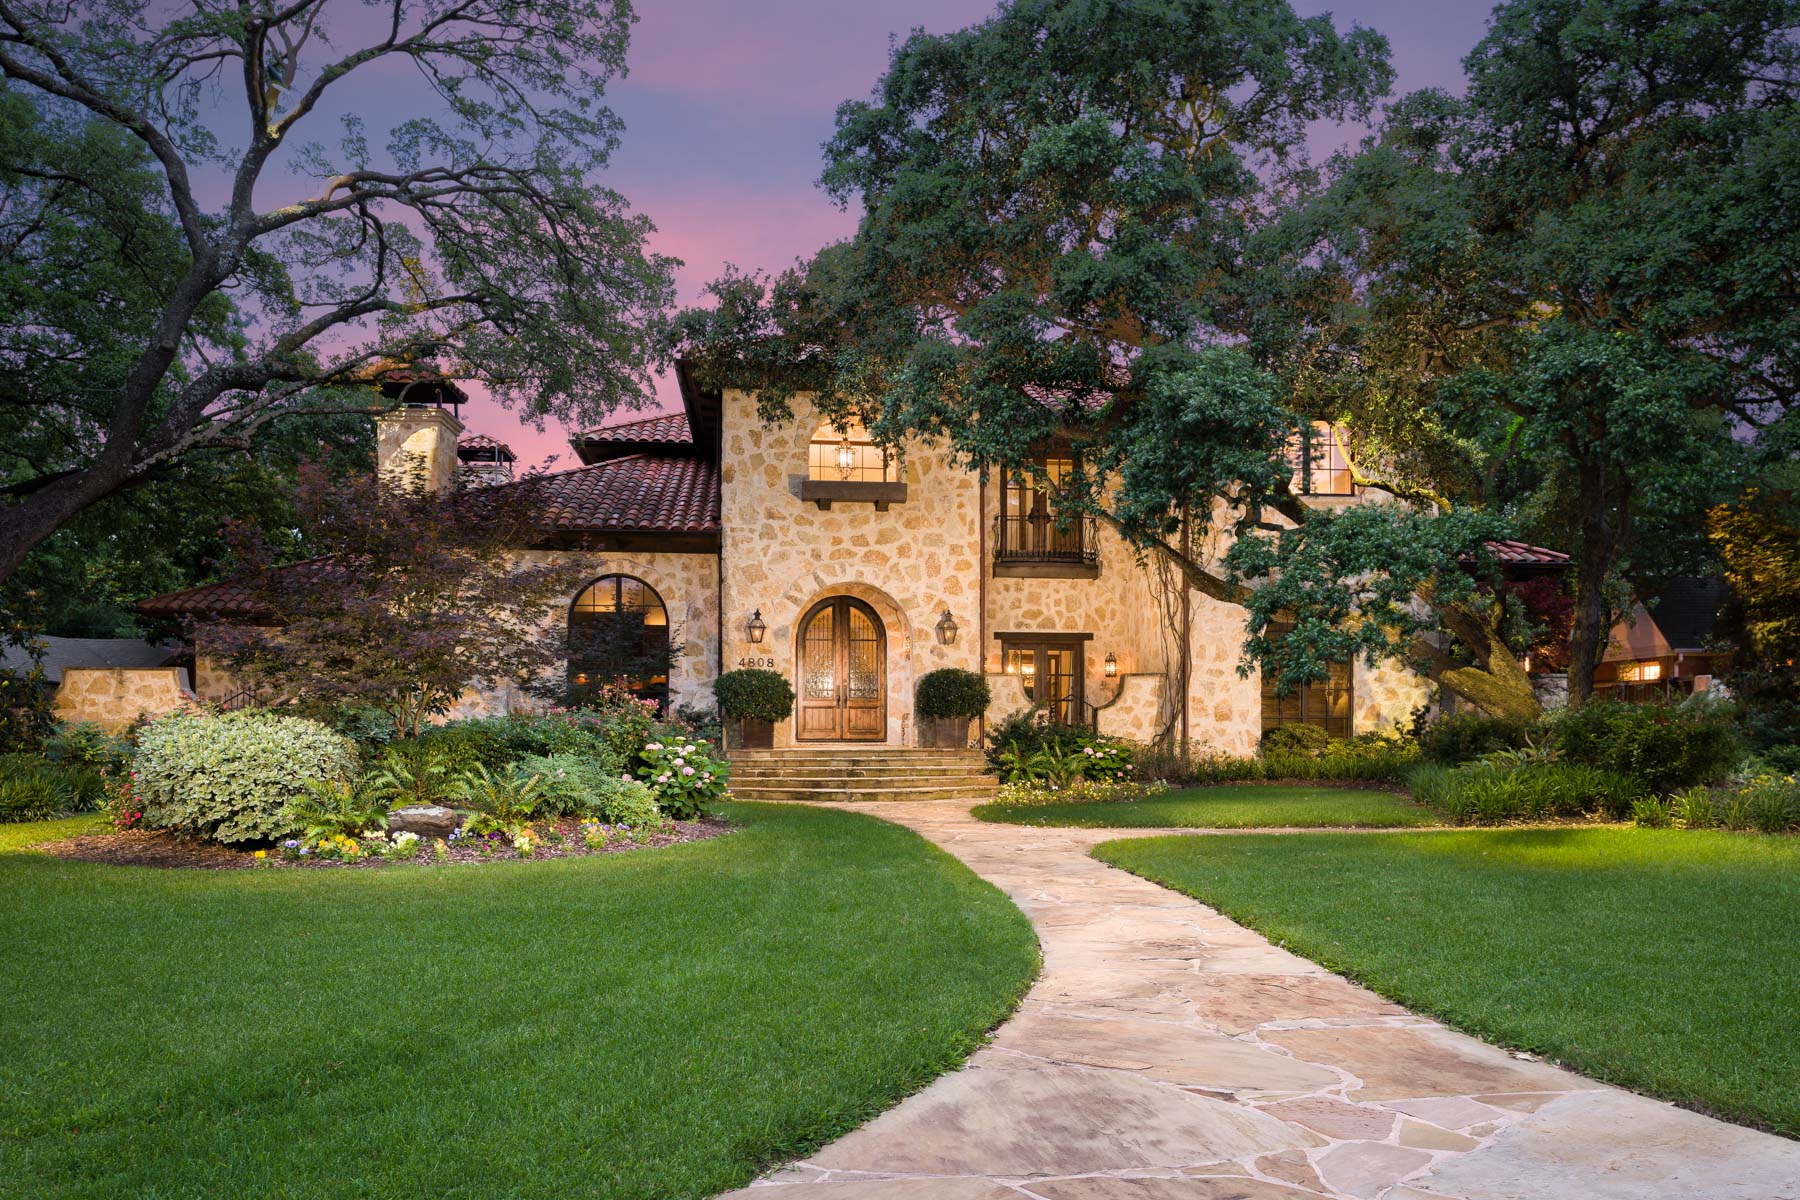 Maison unifamiliale pour l Vente à Mediterranean Preston Hollow Home 4808 Melissa Lane Dallas, Texas, 75229 États-Unis